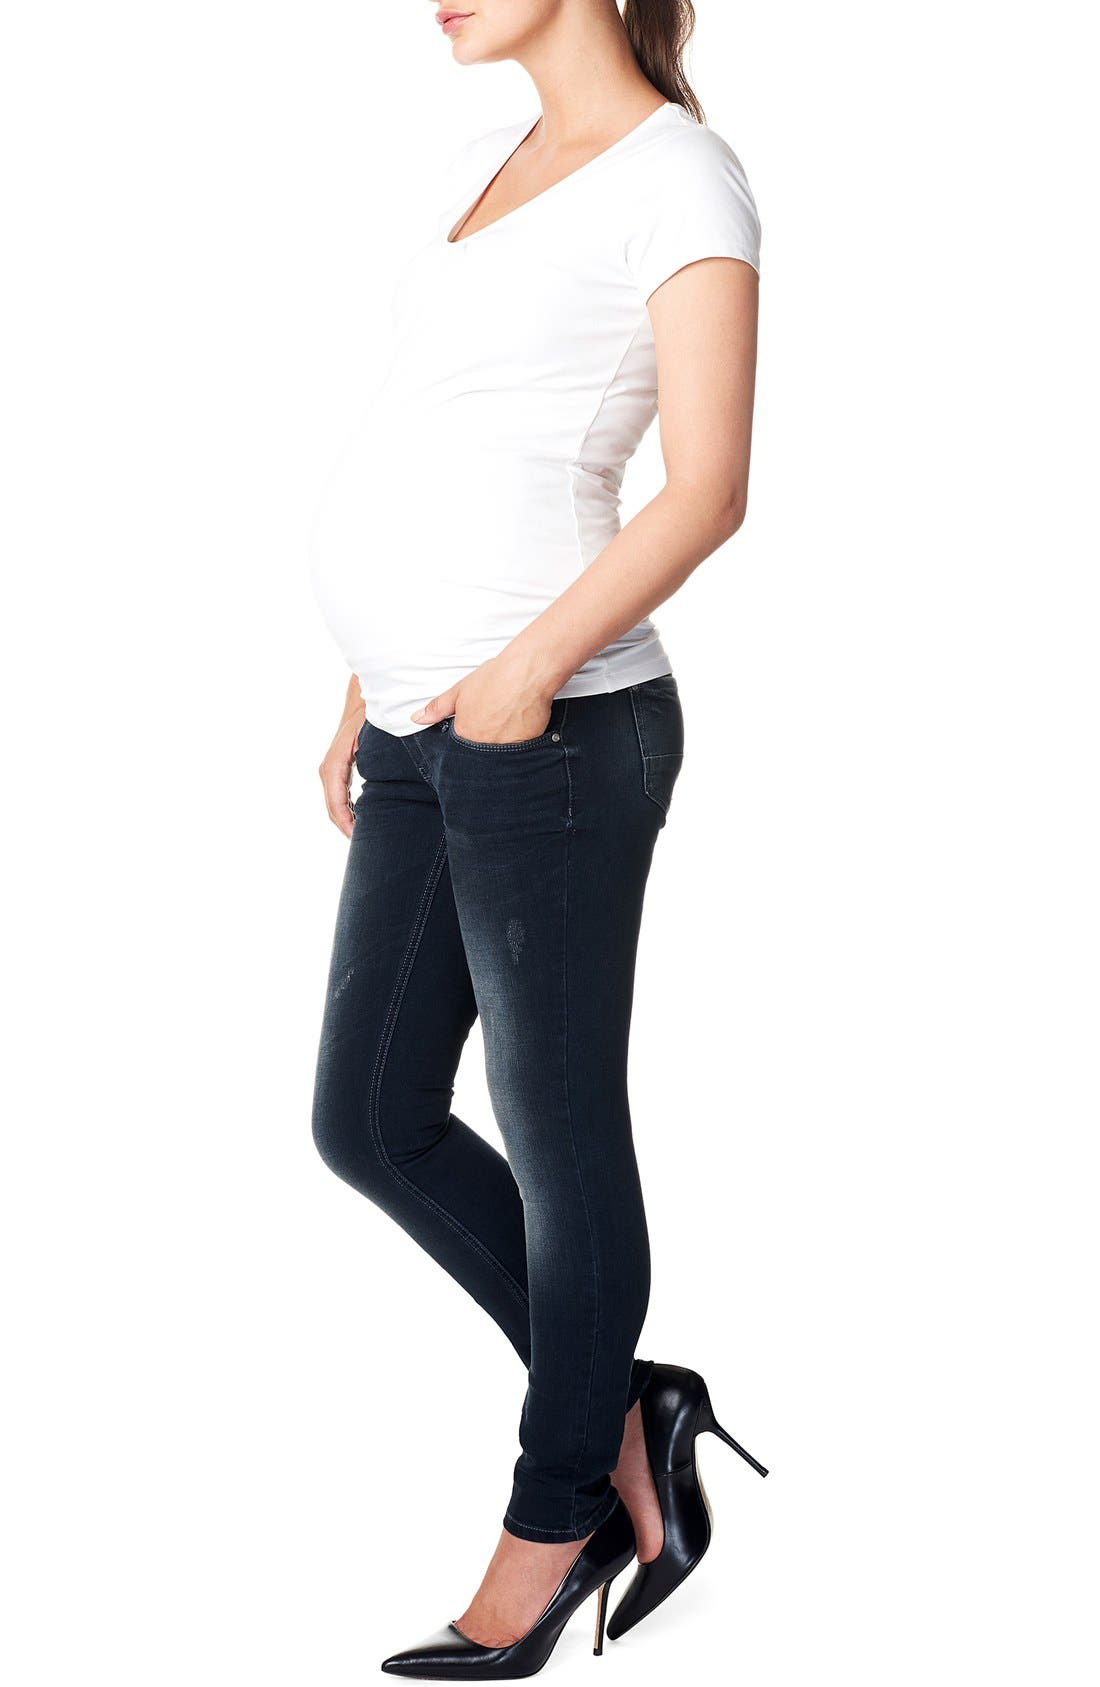 'Britt' Over the Belly Skinny Maternity Jeans,                             Alternate thumbnail 3, color,                             Dark Stone Wash